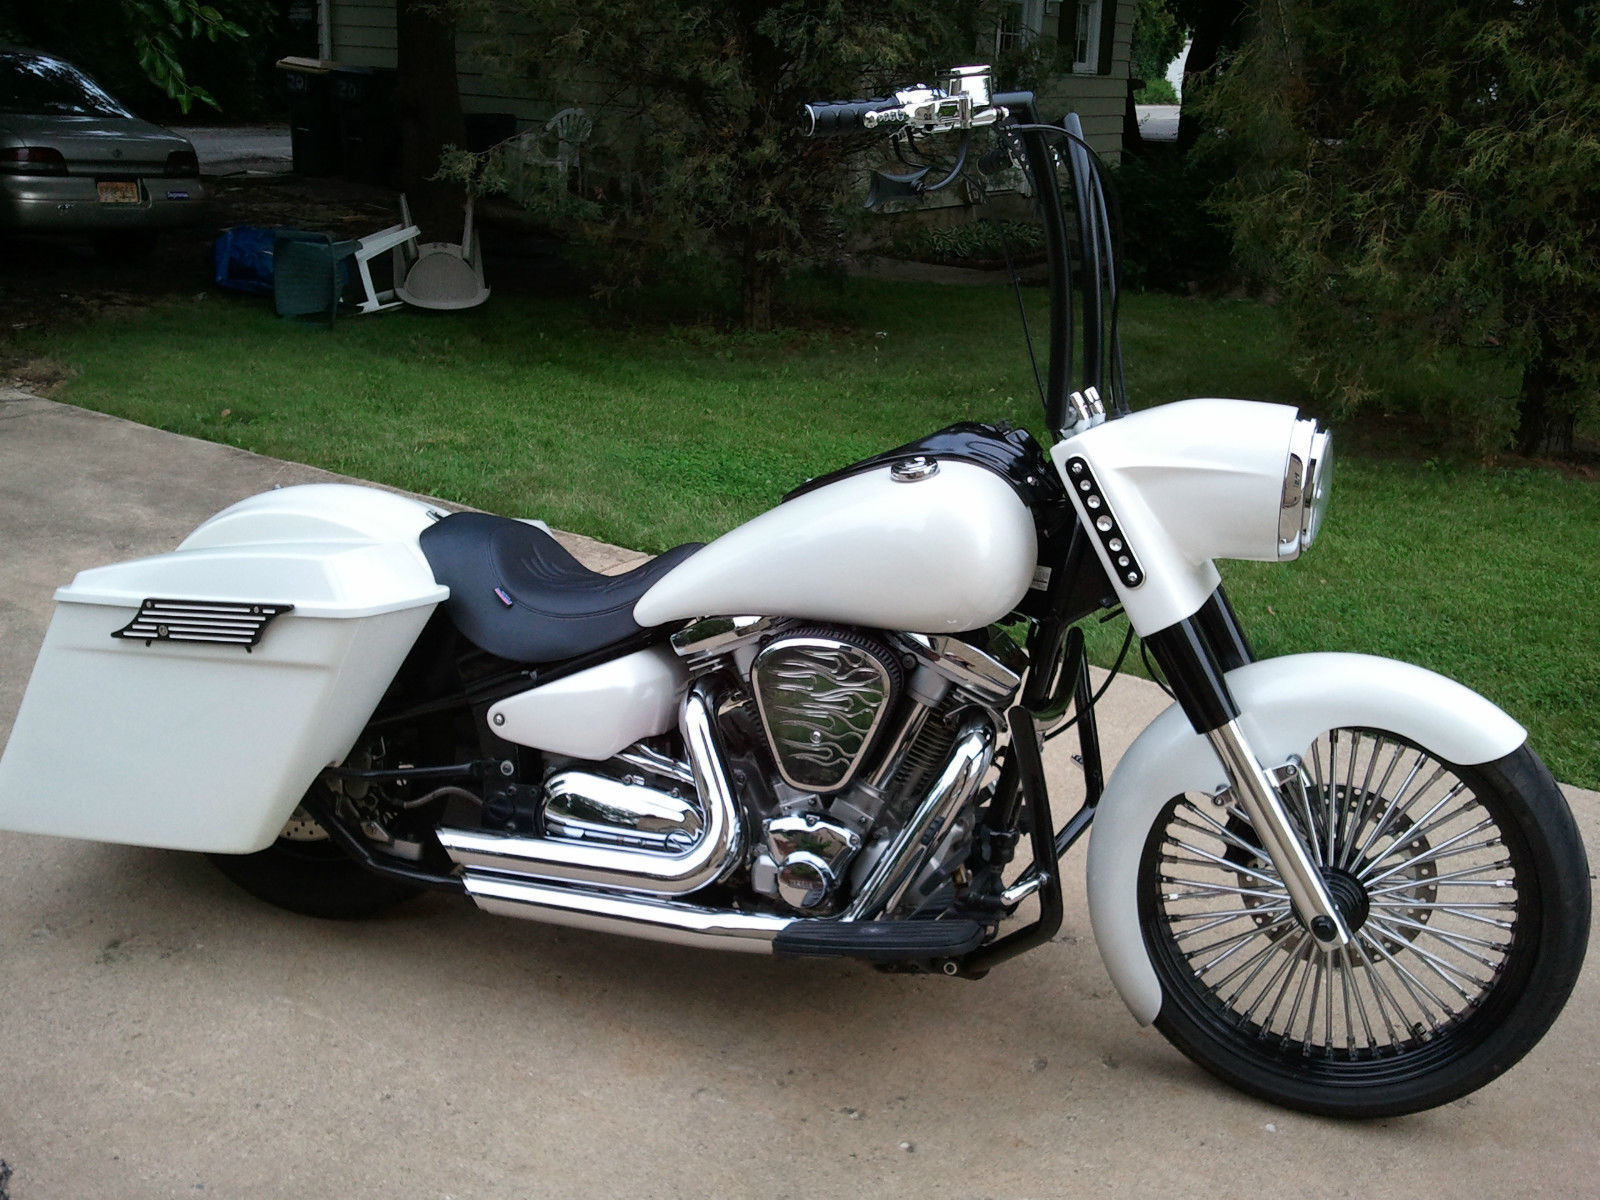 Custom yamaha roadstar bagger images for Yamaha bagger motorcycles